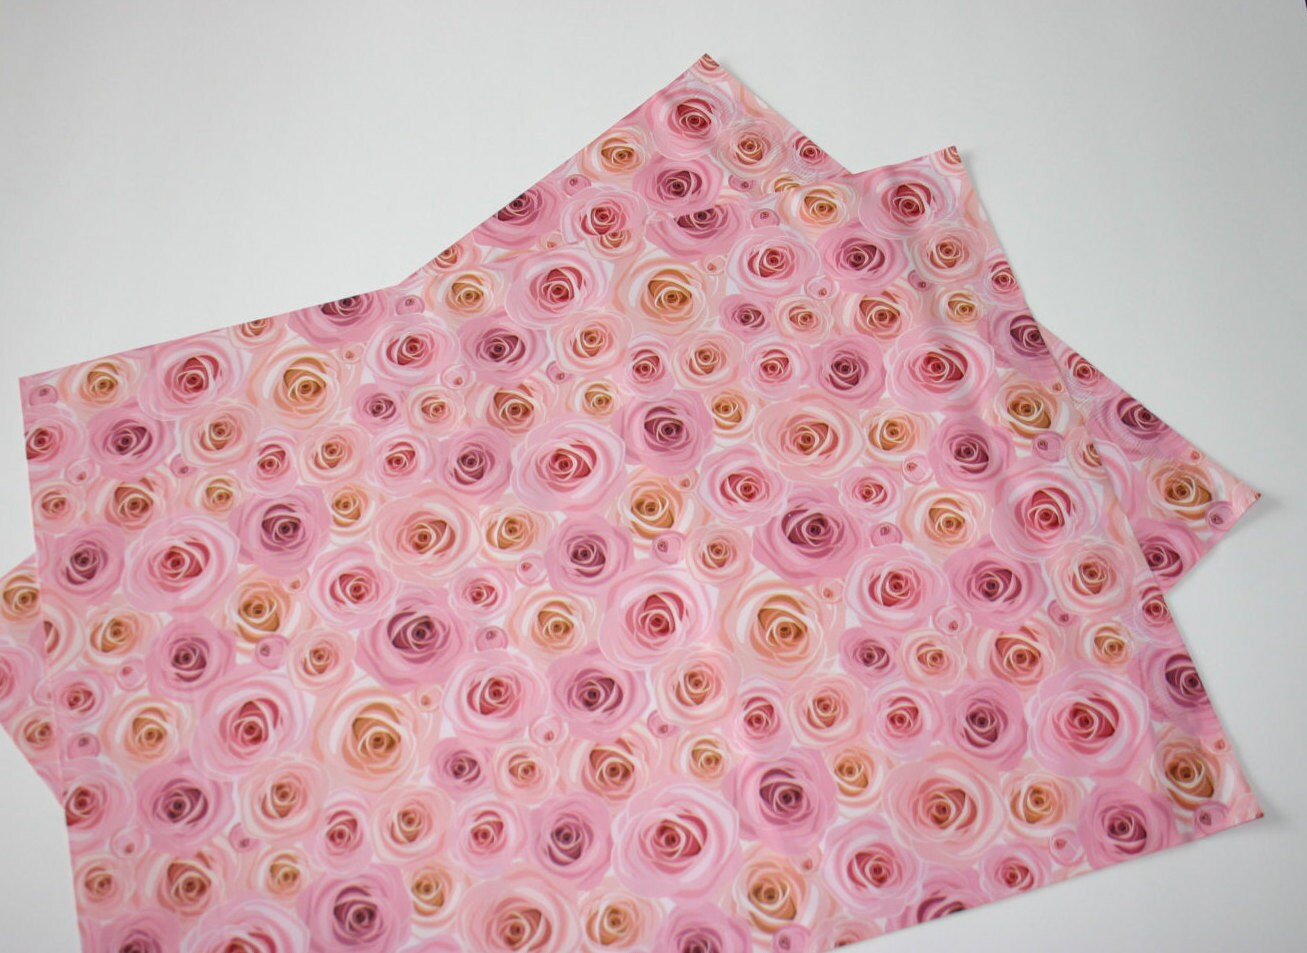 10 New ROSES 14x17 Pink Flower Mailers Poly Shipping Envelopes Boutique Bags